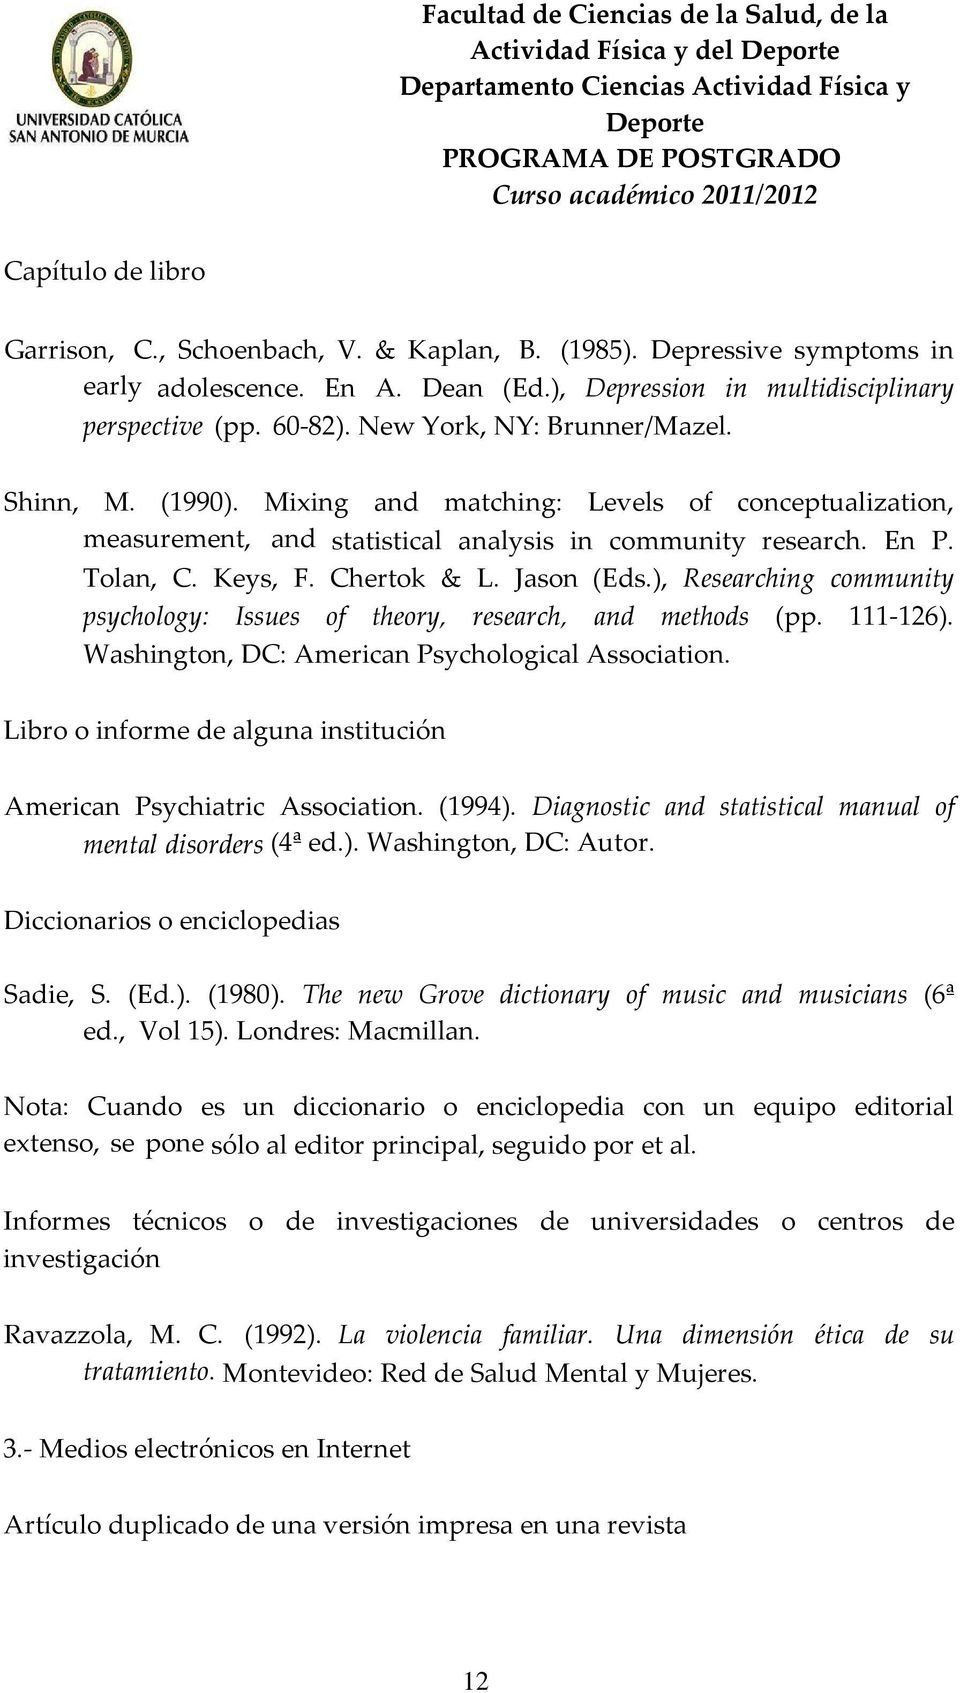 Chertok & L. Jason (Eds.), Researching community psychology: Issues of theory, research, and methods (pp. 111 126). Washington, DC: American Psychological Association.